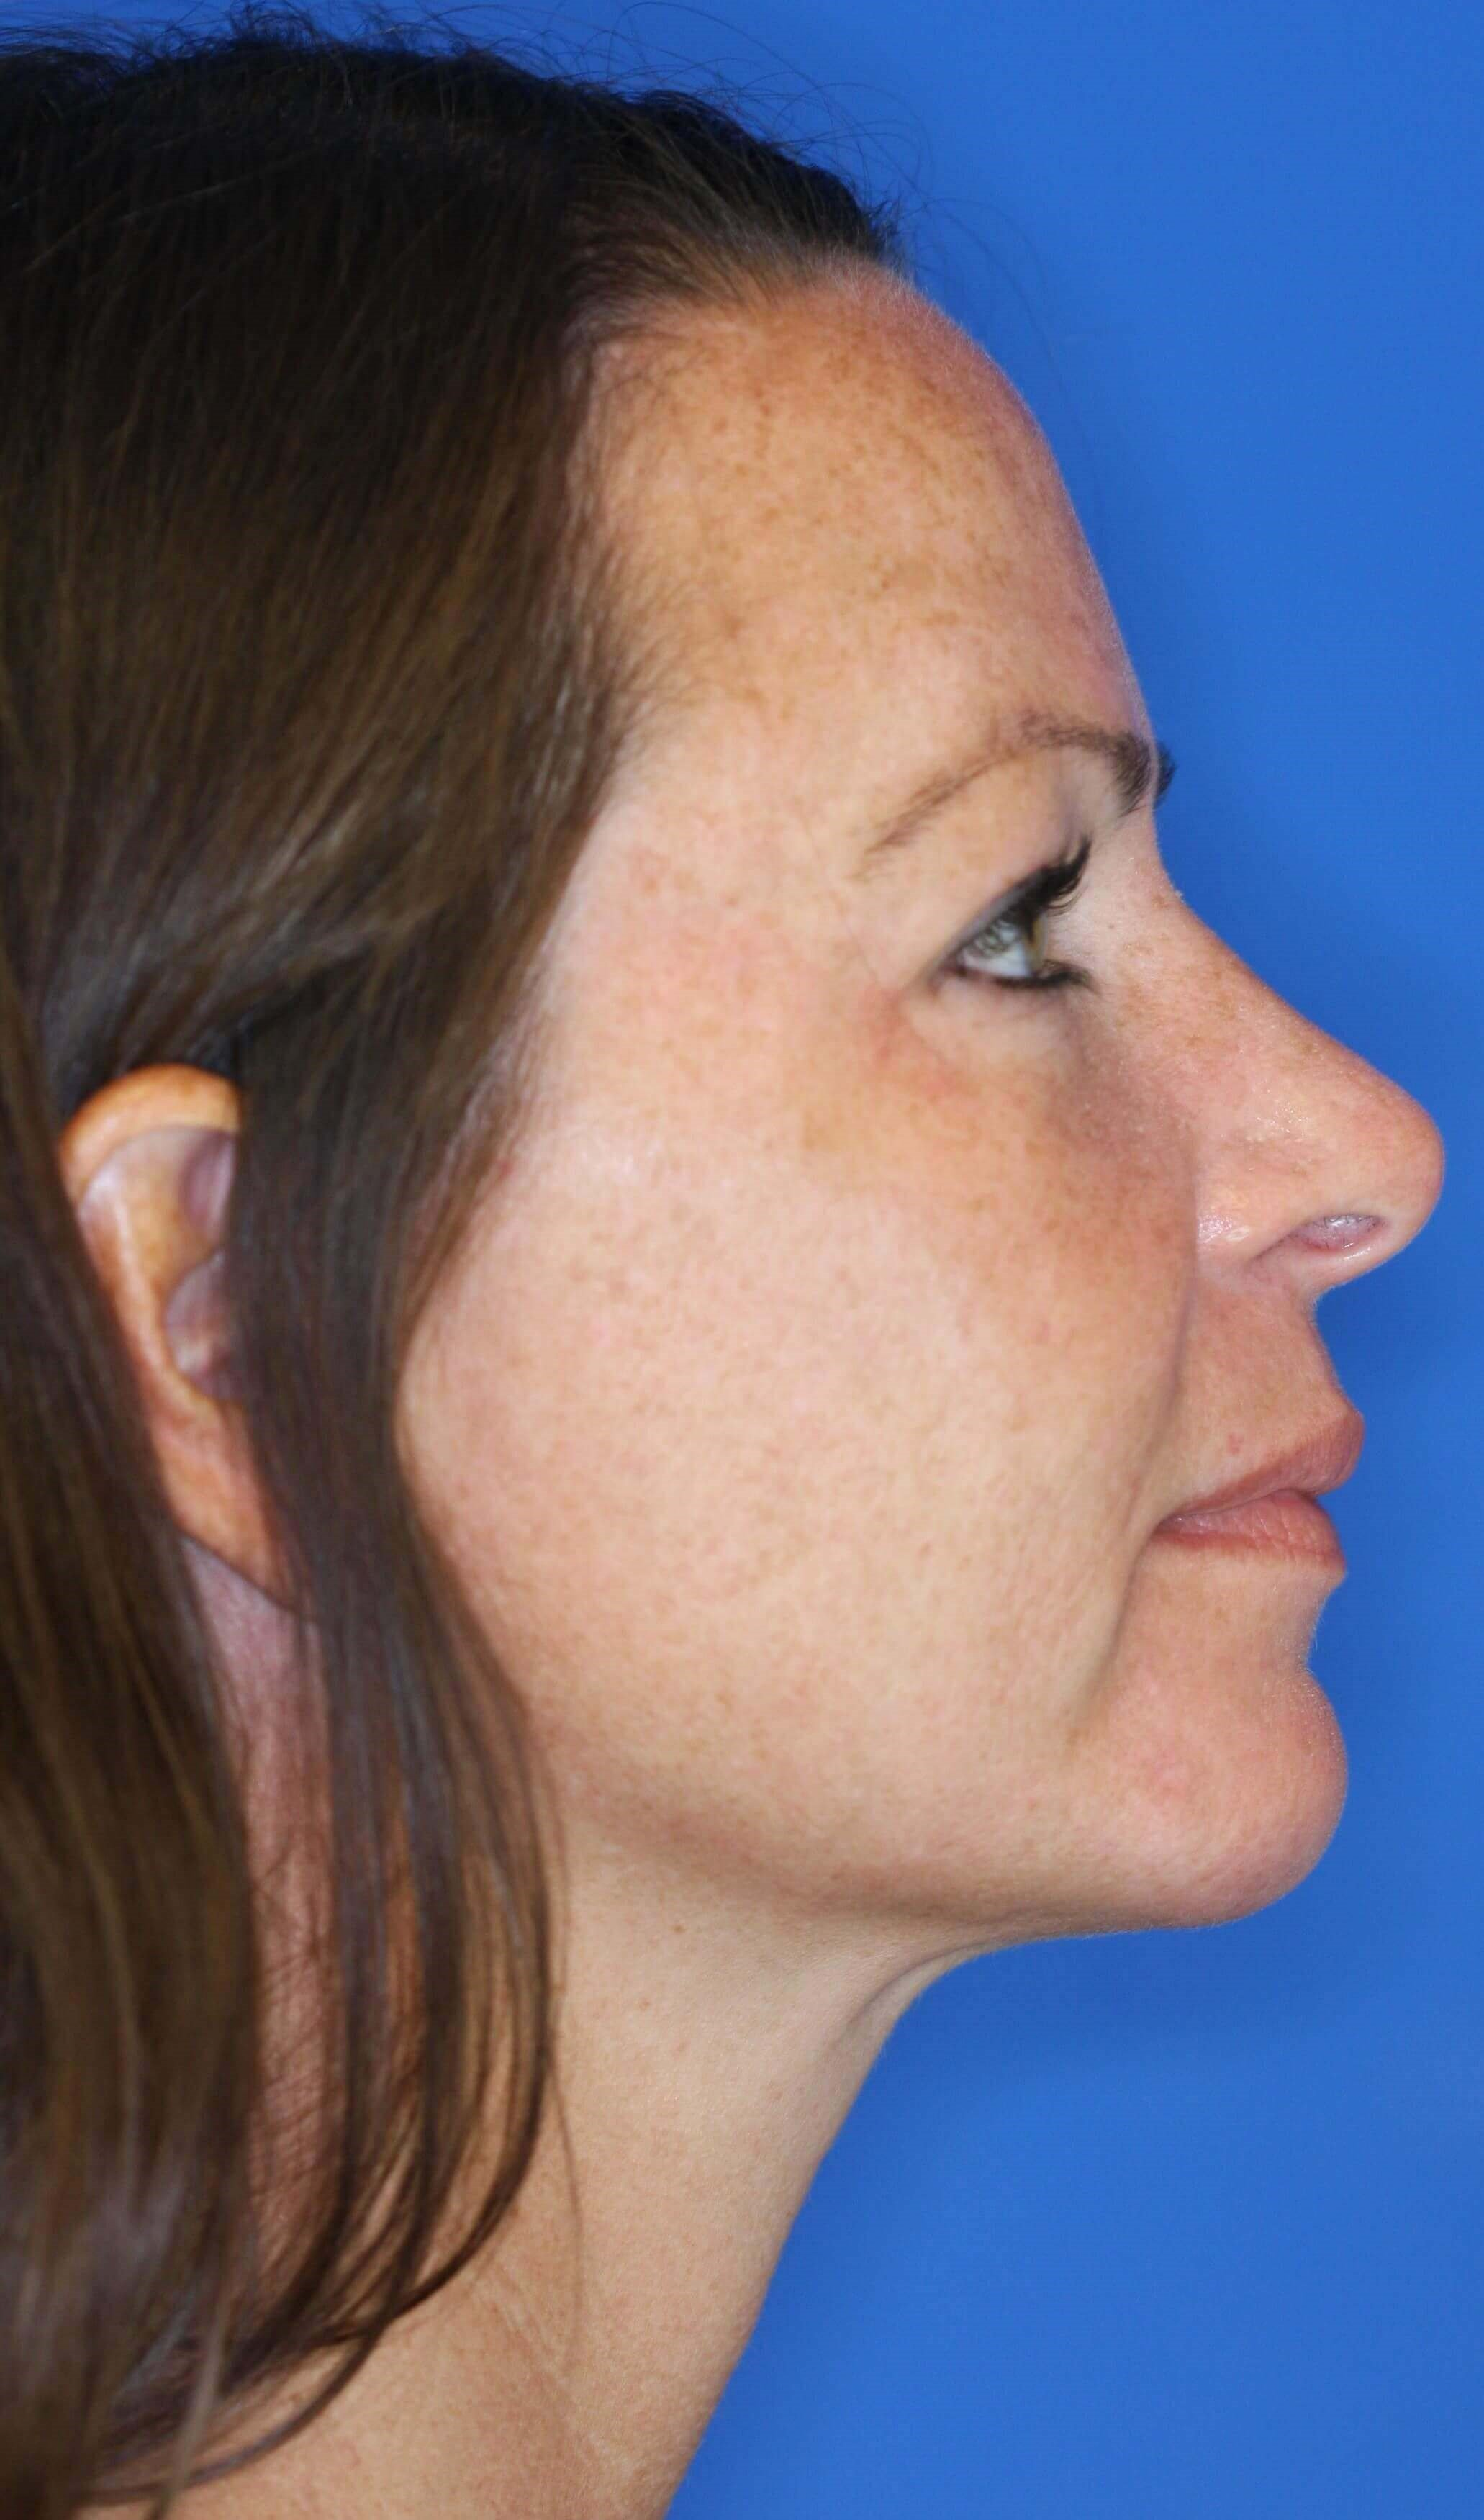 laser resurfacing of the face 10 months postop